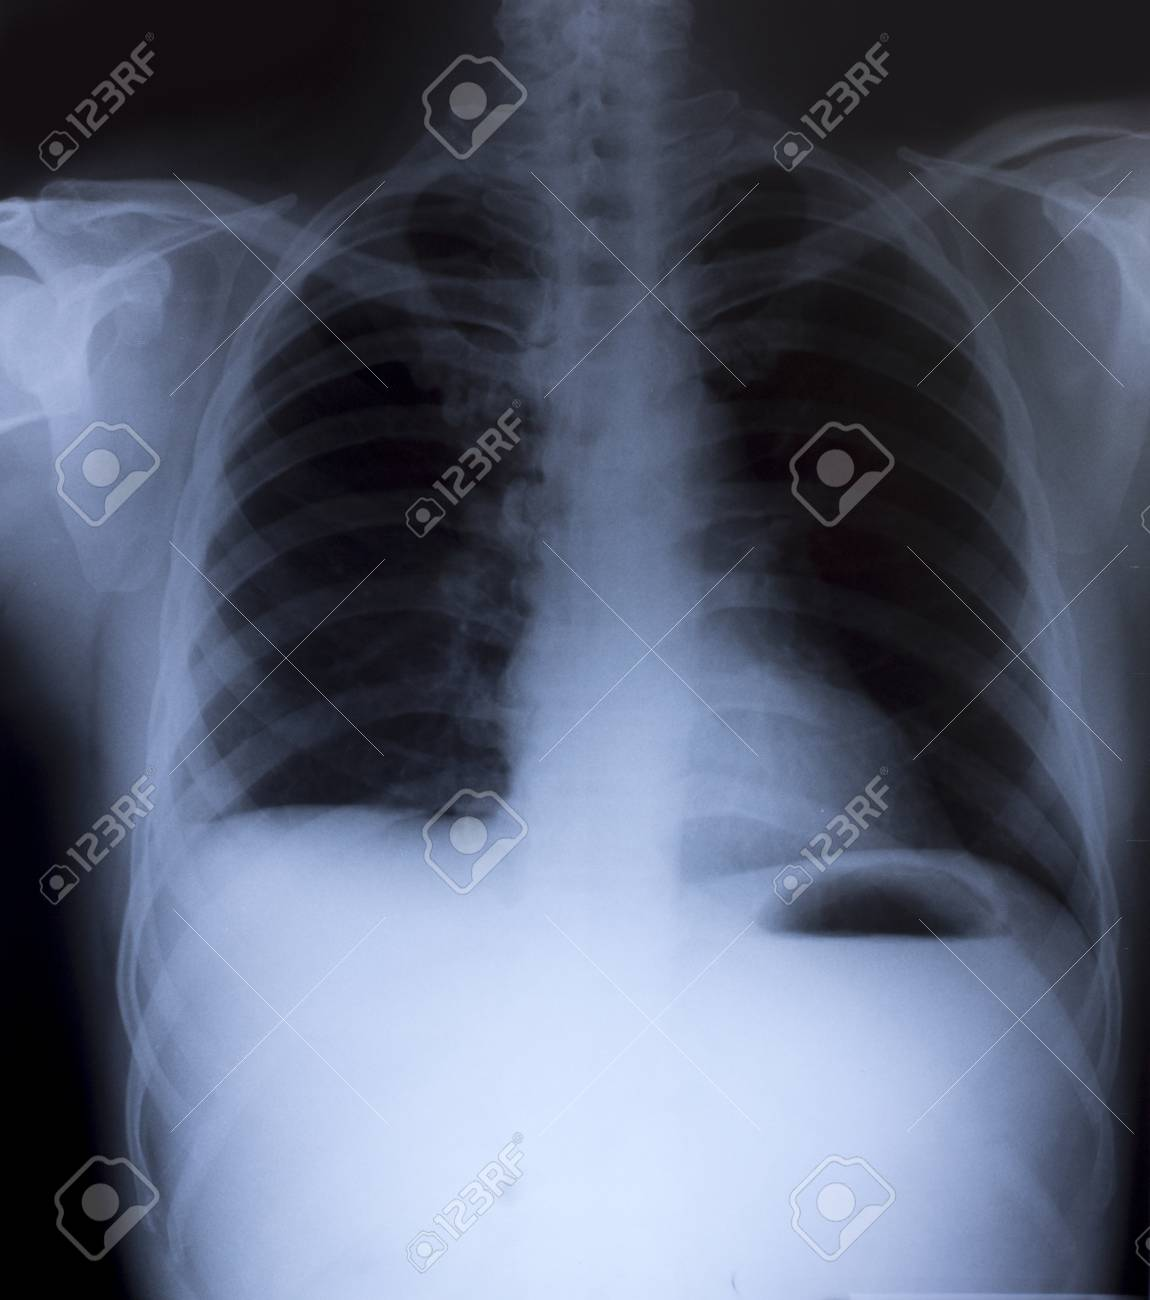 X-Ray Image Of Human Chest for a medical diagnosis Stock Photo - 26483232